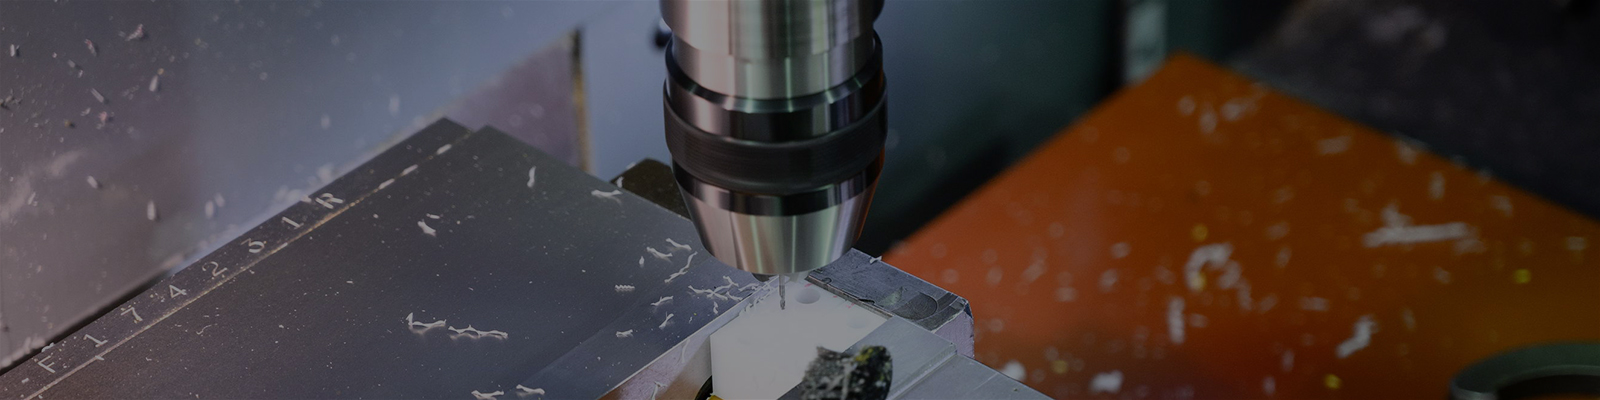 Machining Technology Introduction Page